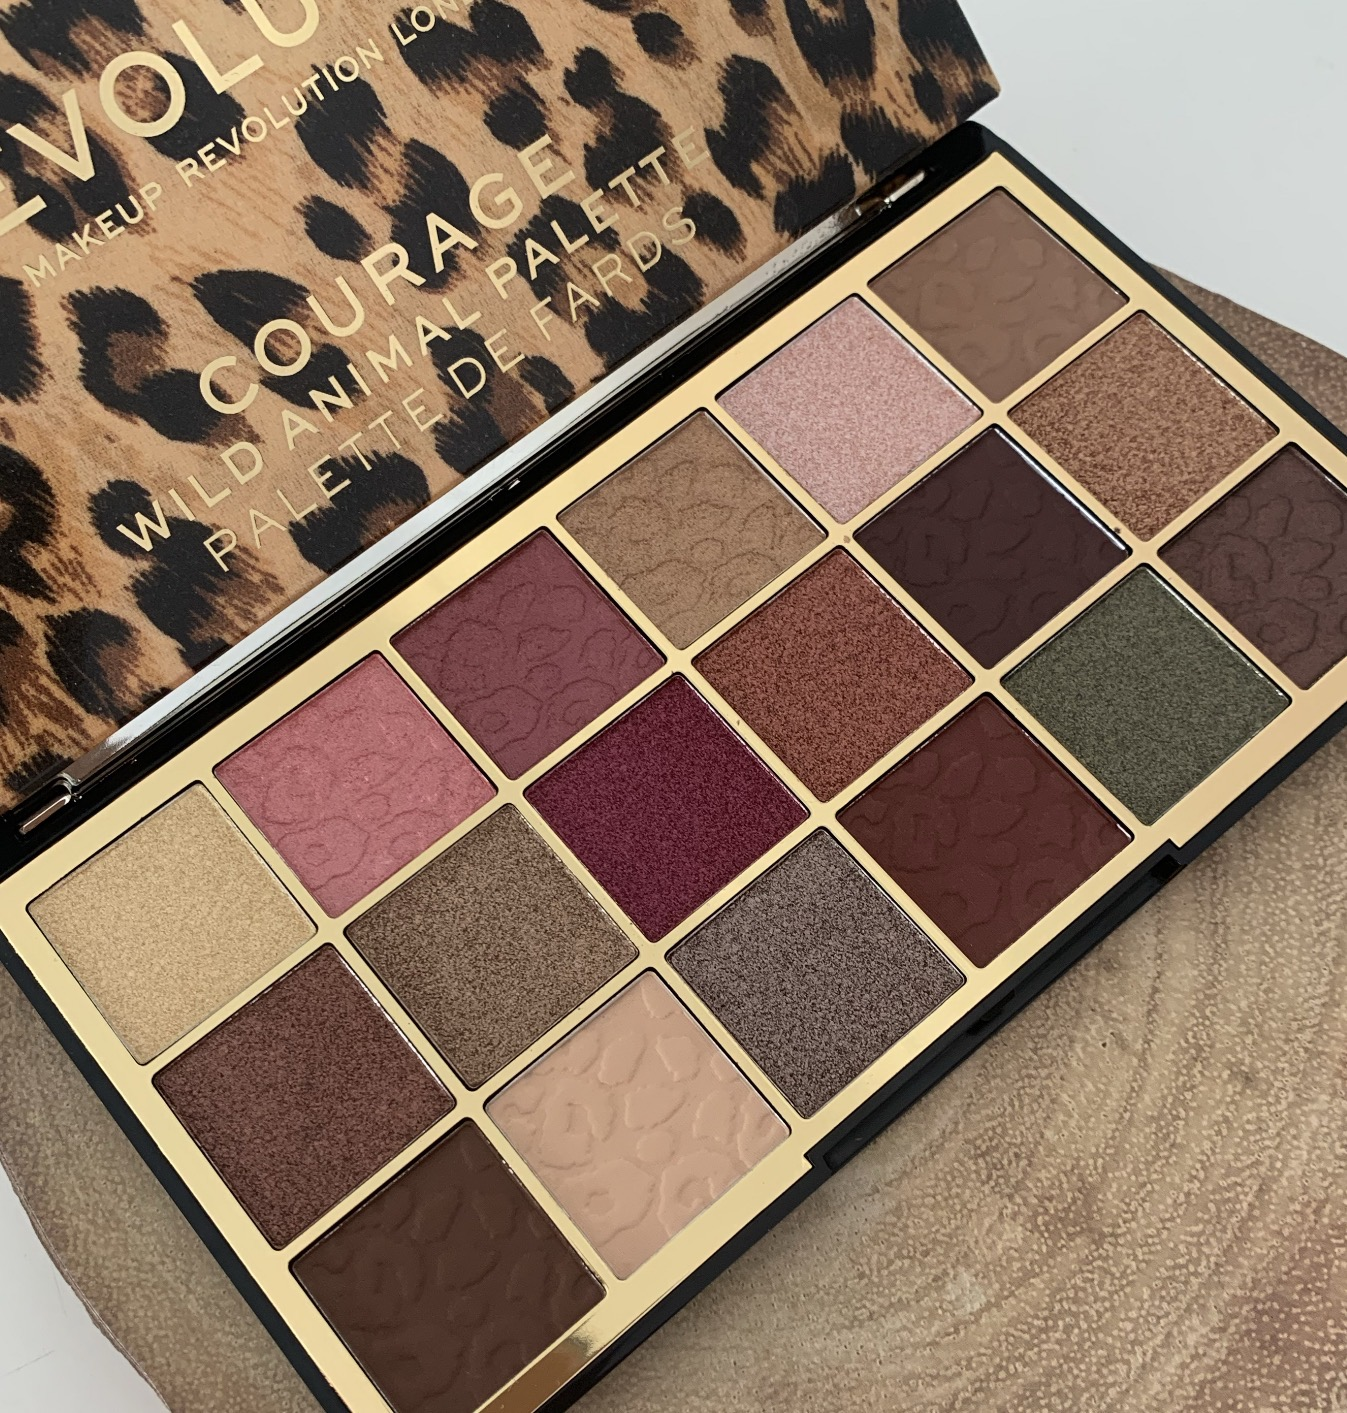 an eyeshadow palette opened up showing the colours